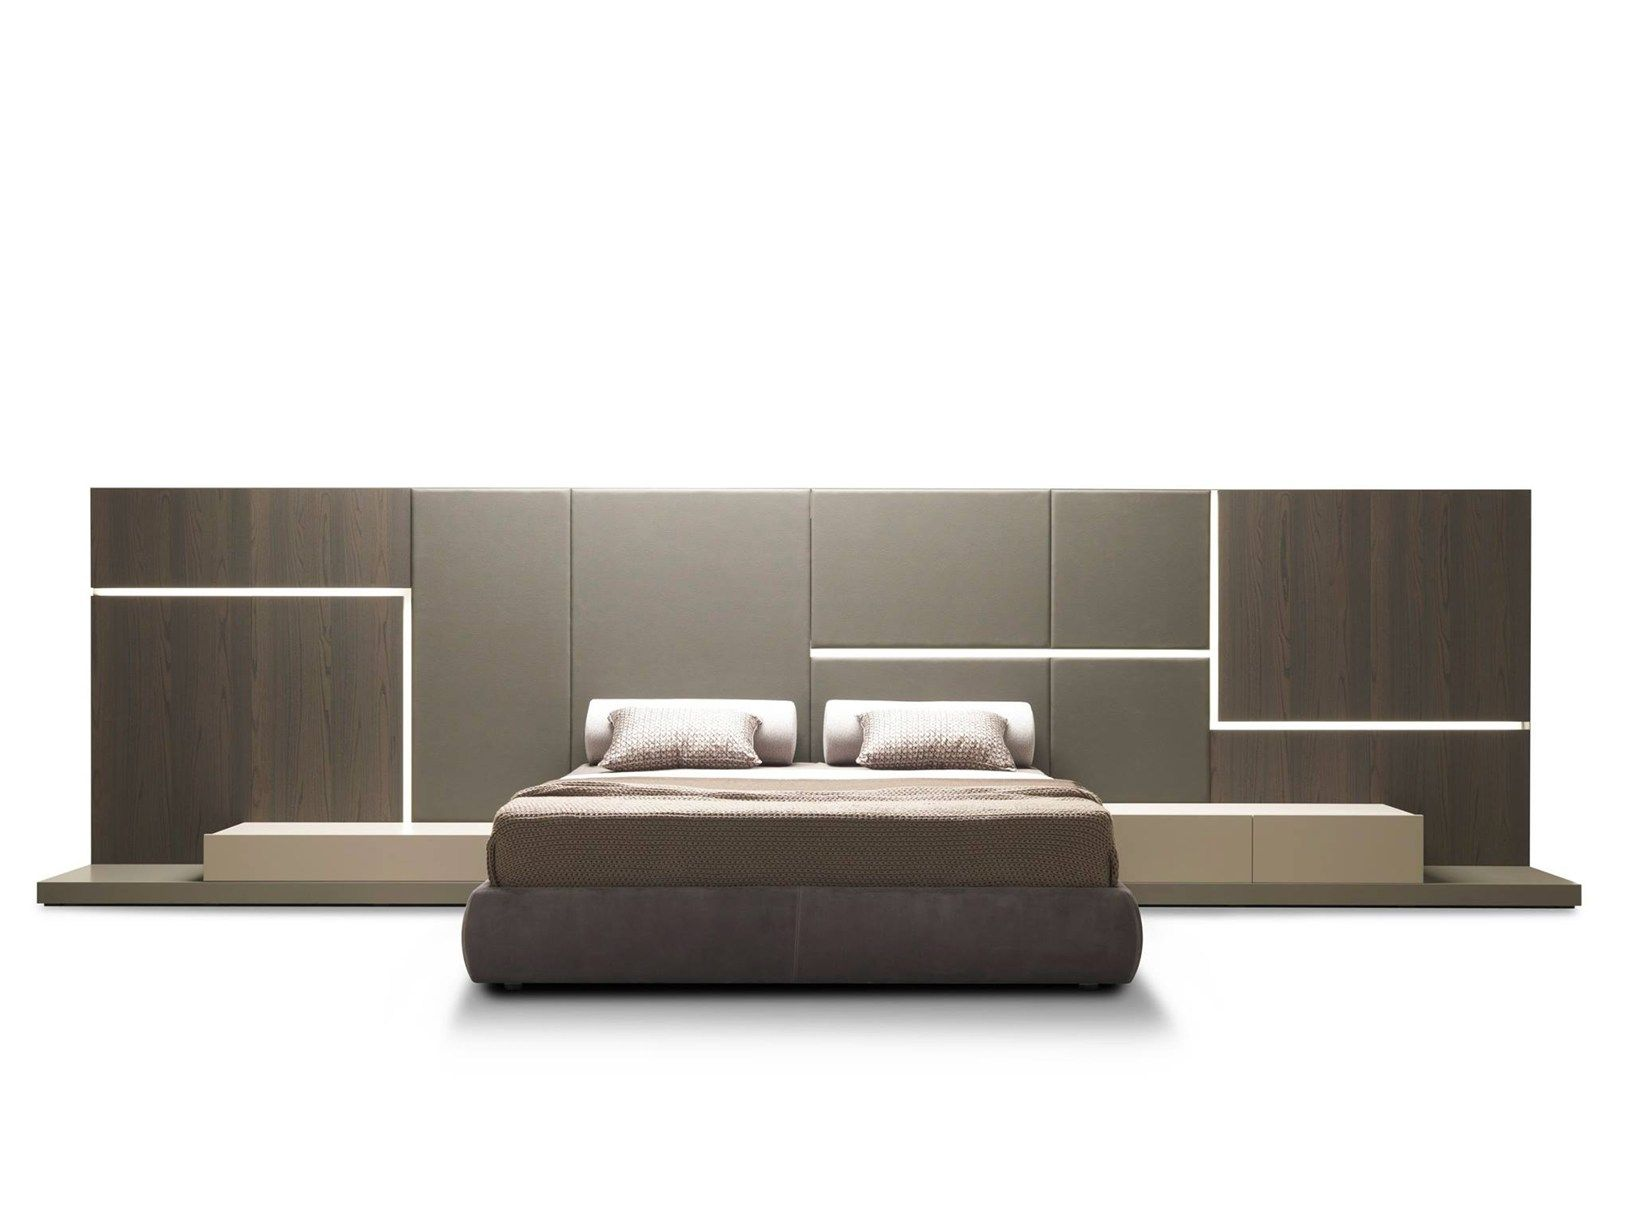 the ghiroletto bed is perhaps one of the most interesting elements, Schlafzimmer entwurf